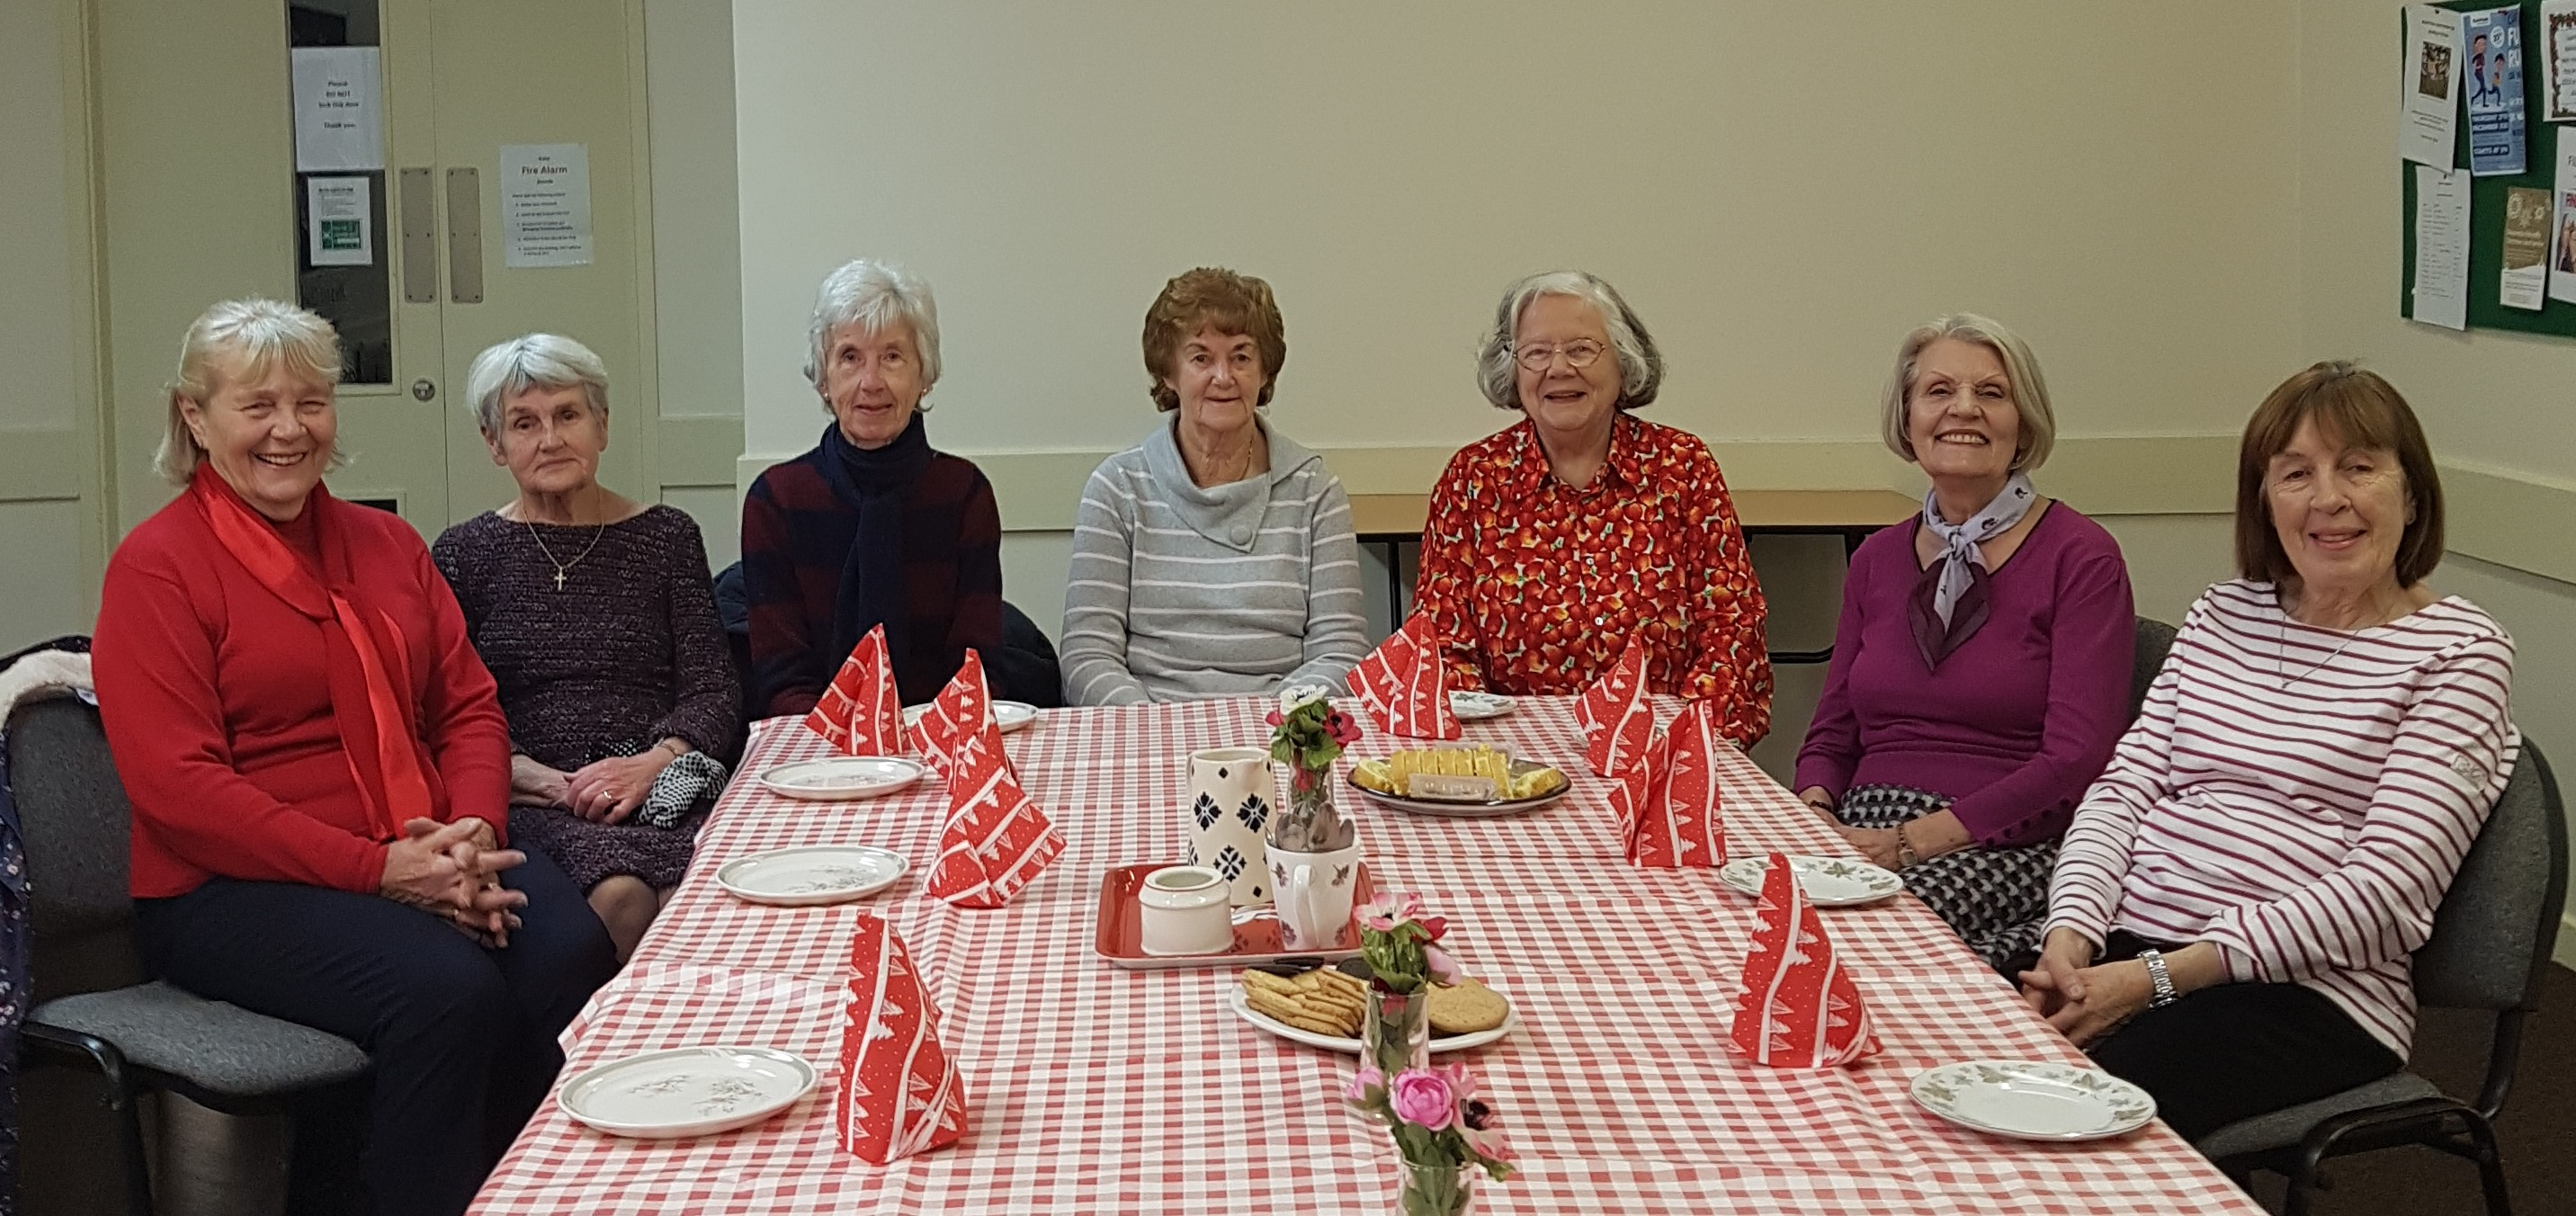 Thursday Afternoon Tea at St. Charles Parish